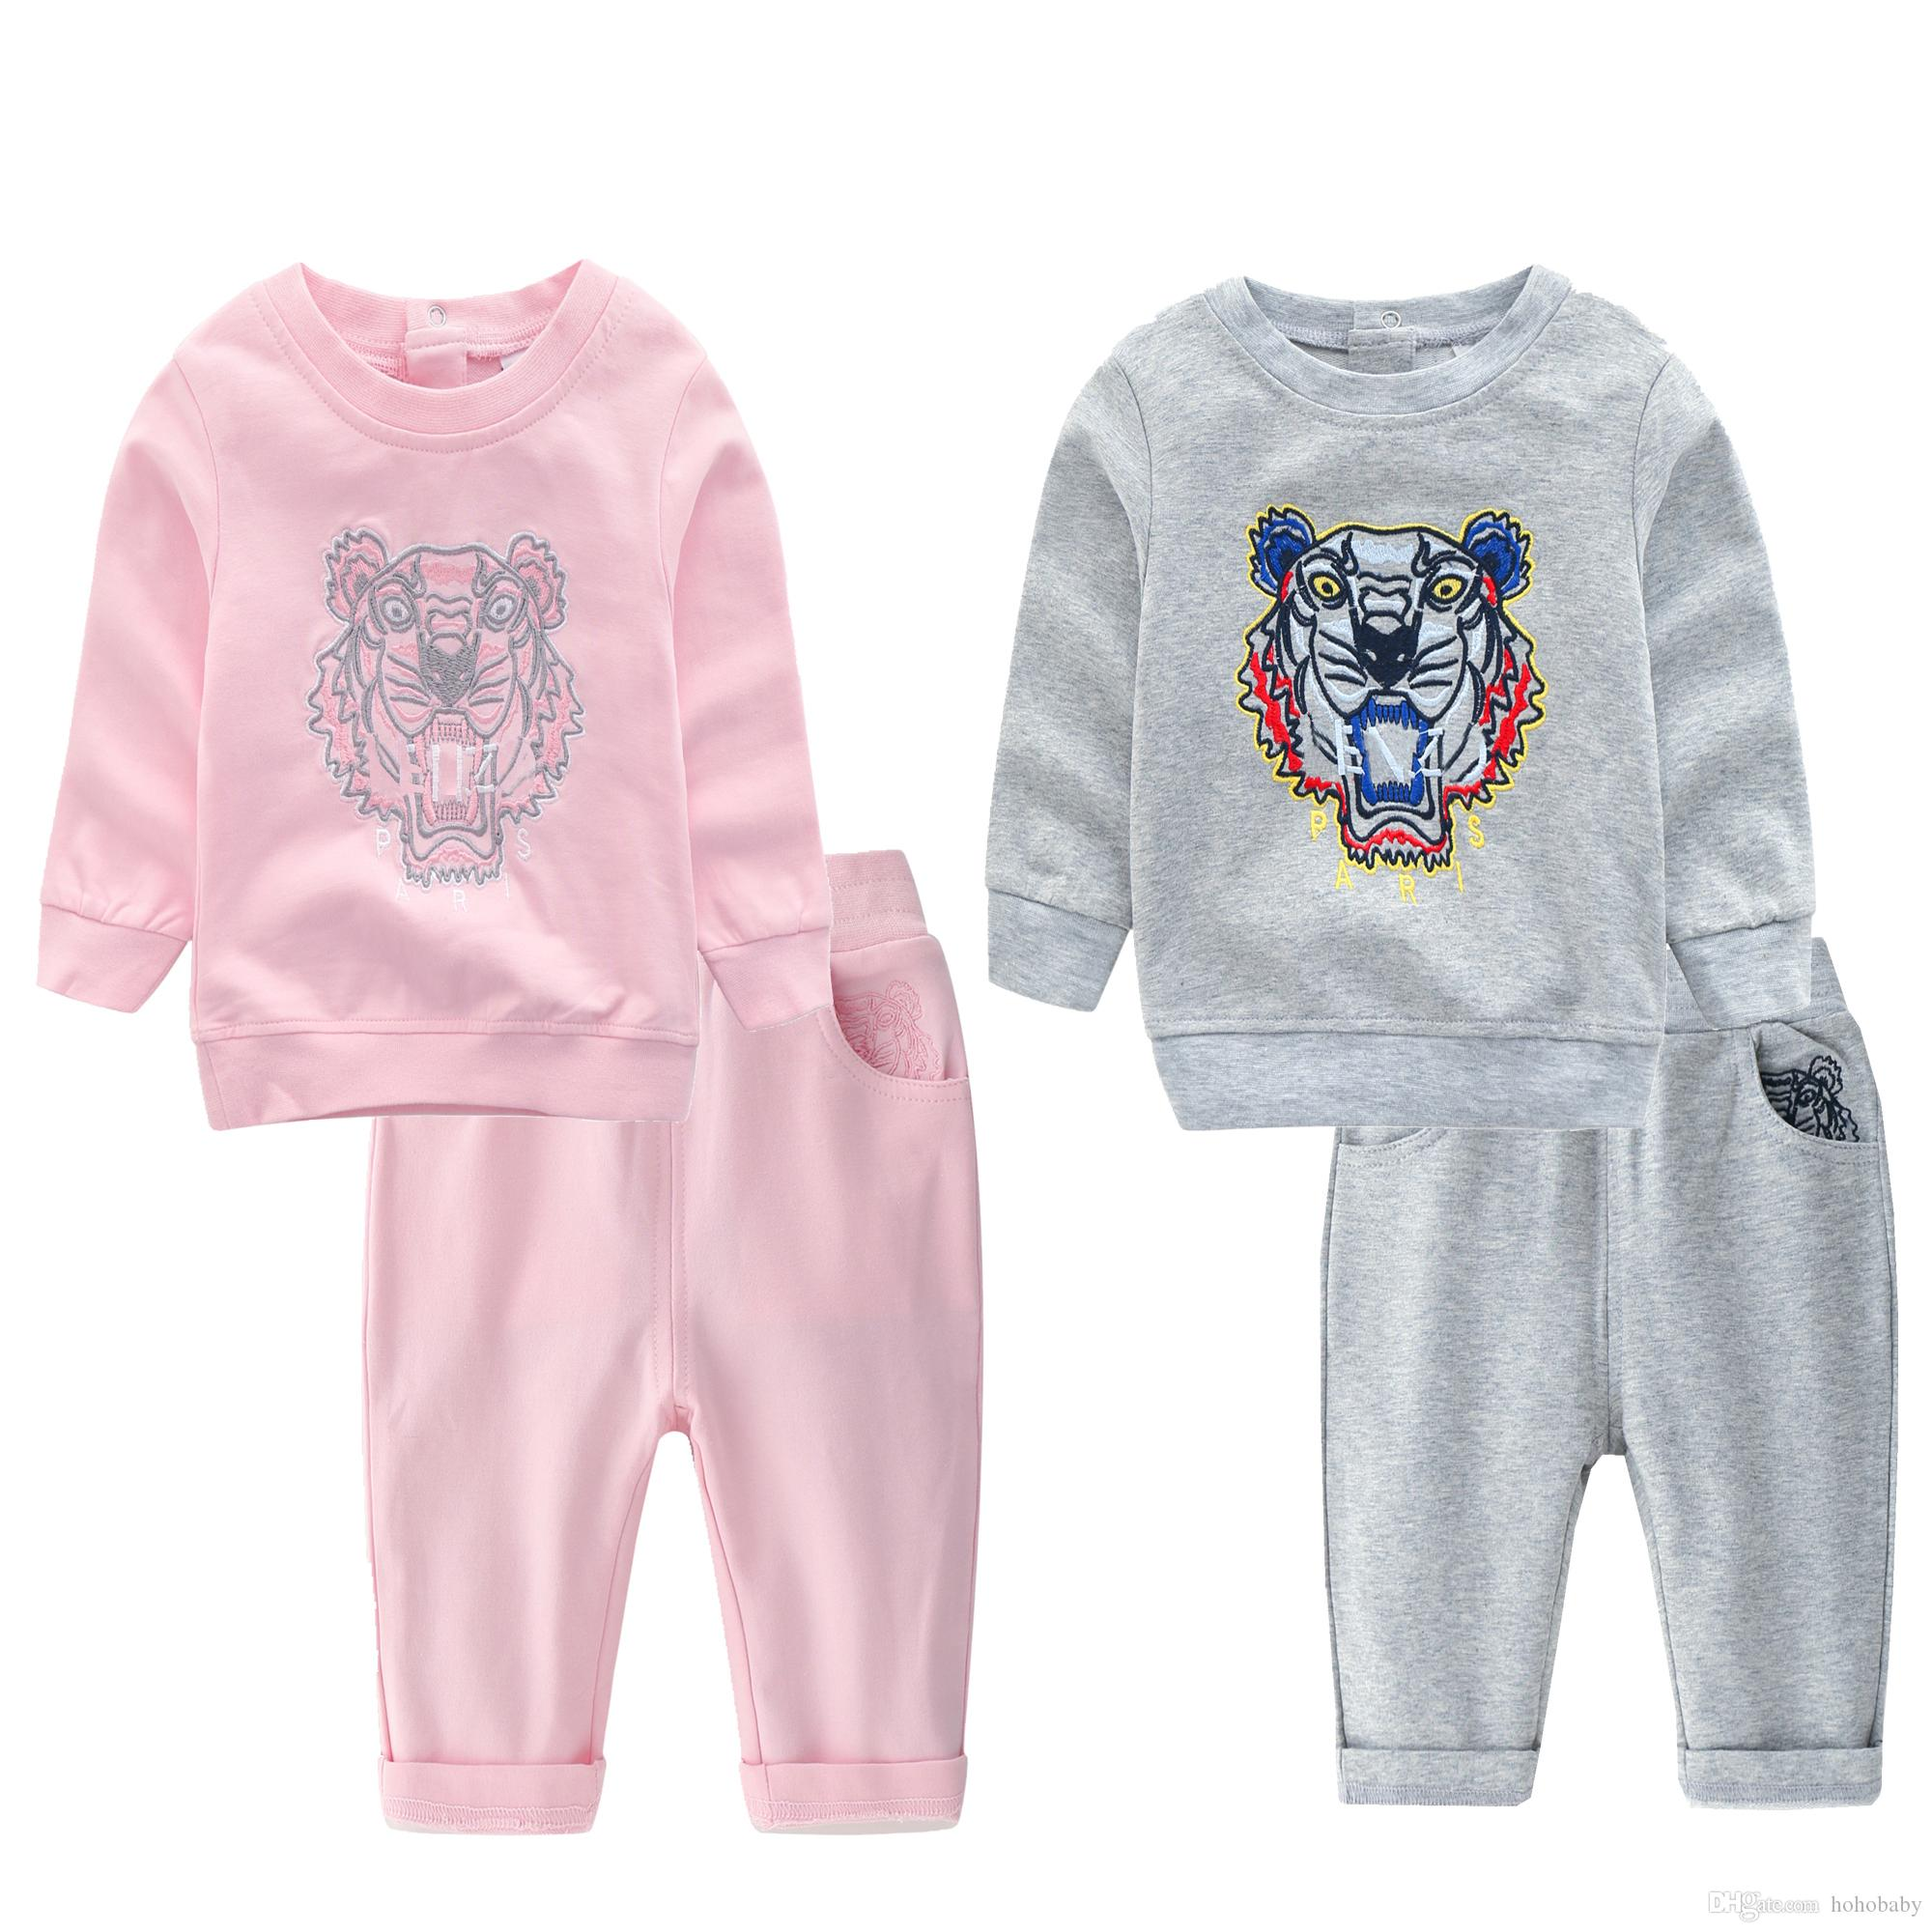 Baby Girl Boy 2 pc Set Tracksuit Outfit long sleeve Top Trousers 3 6 9 12 18 Mth